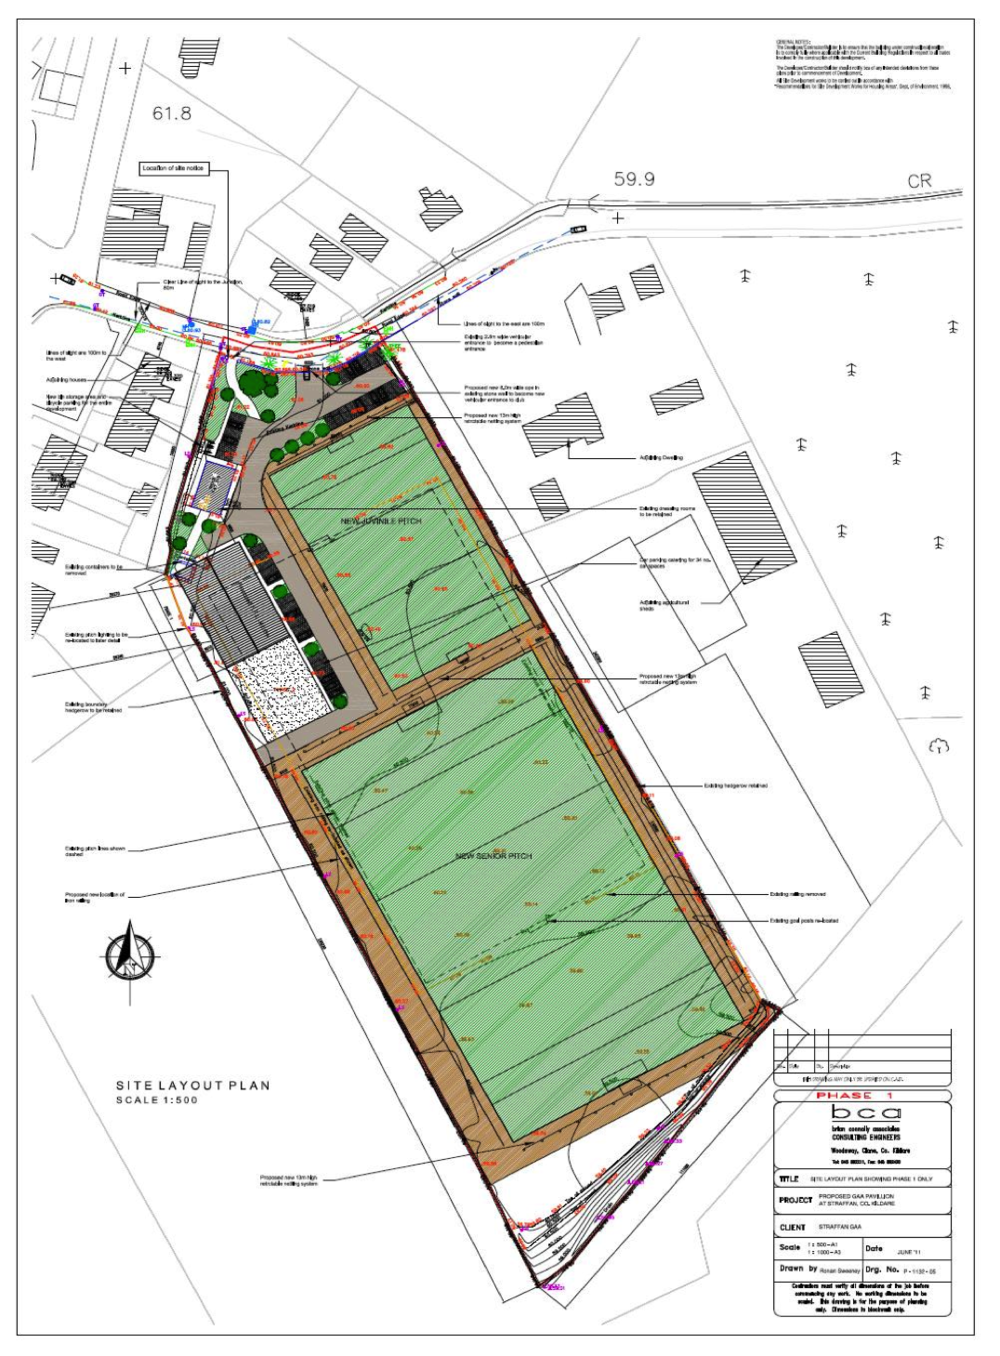 Site layout of the clubhouse and adjoining pitches.